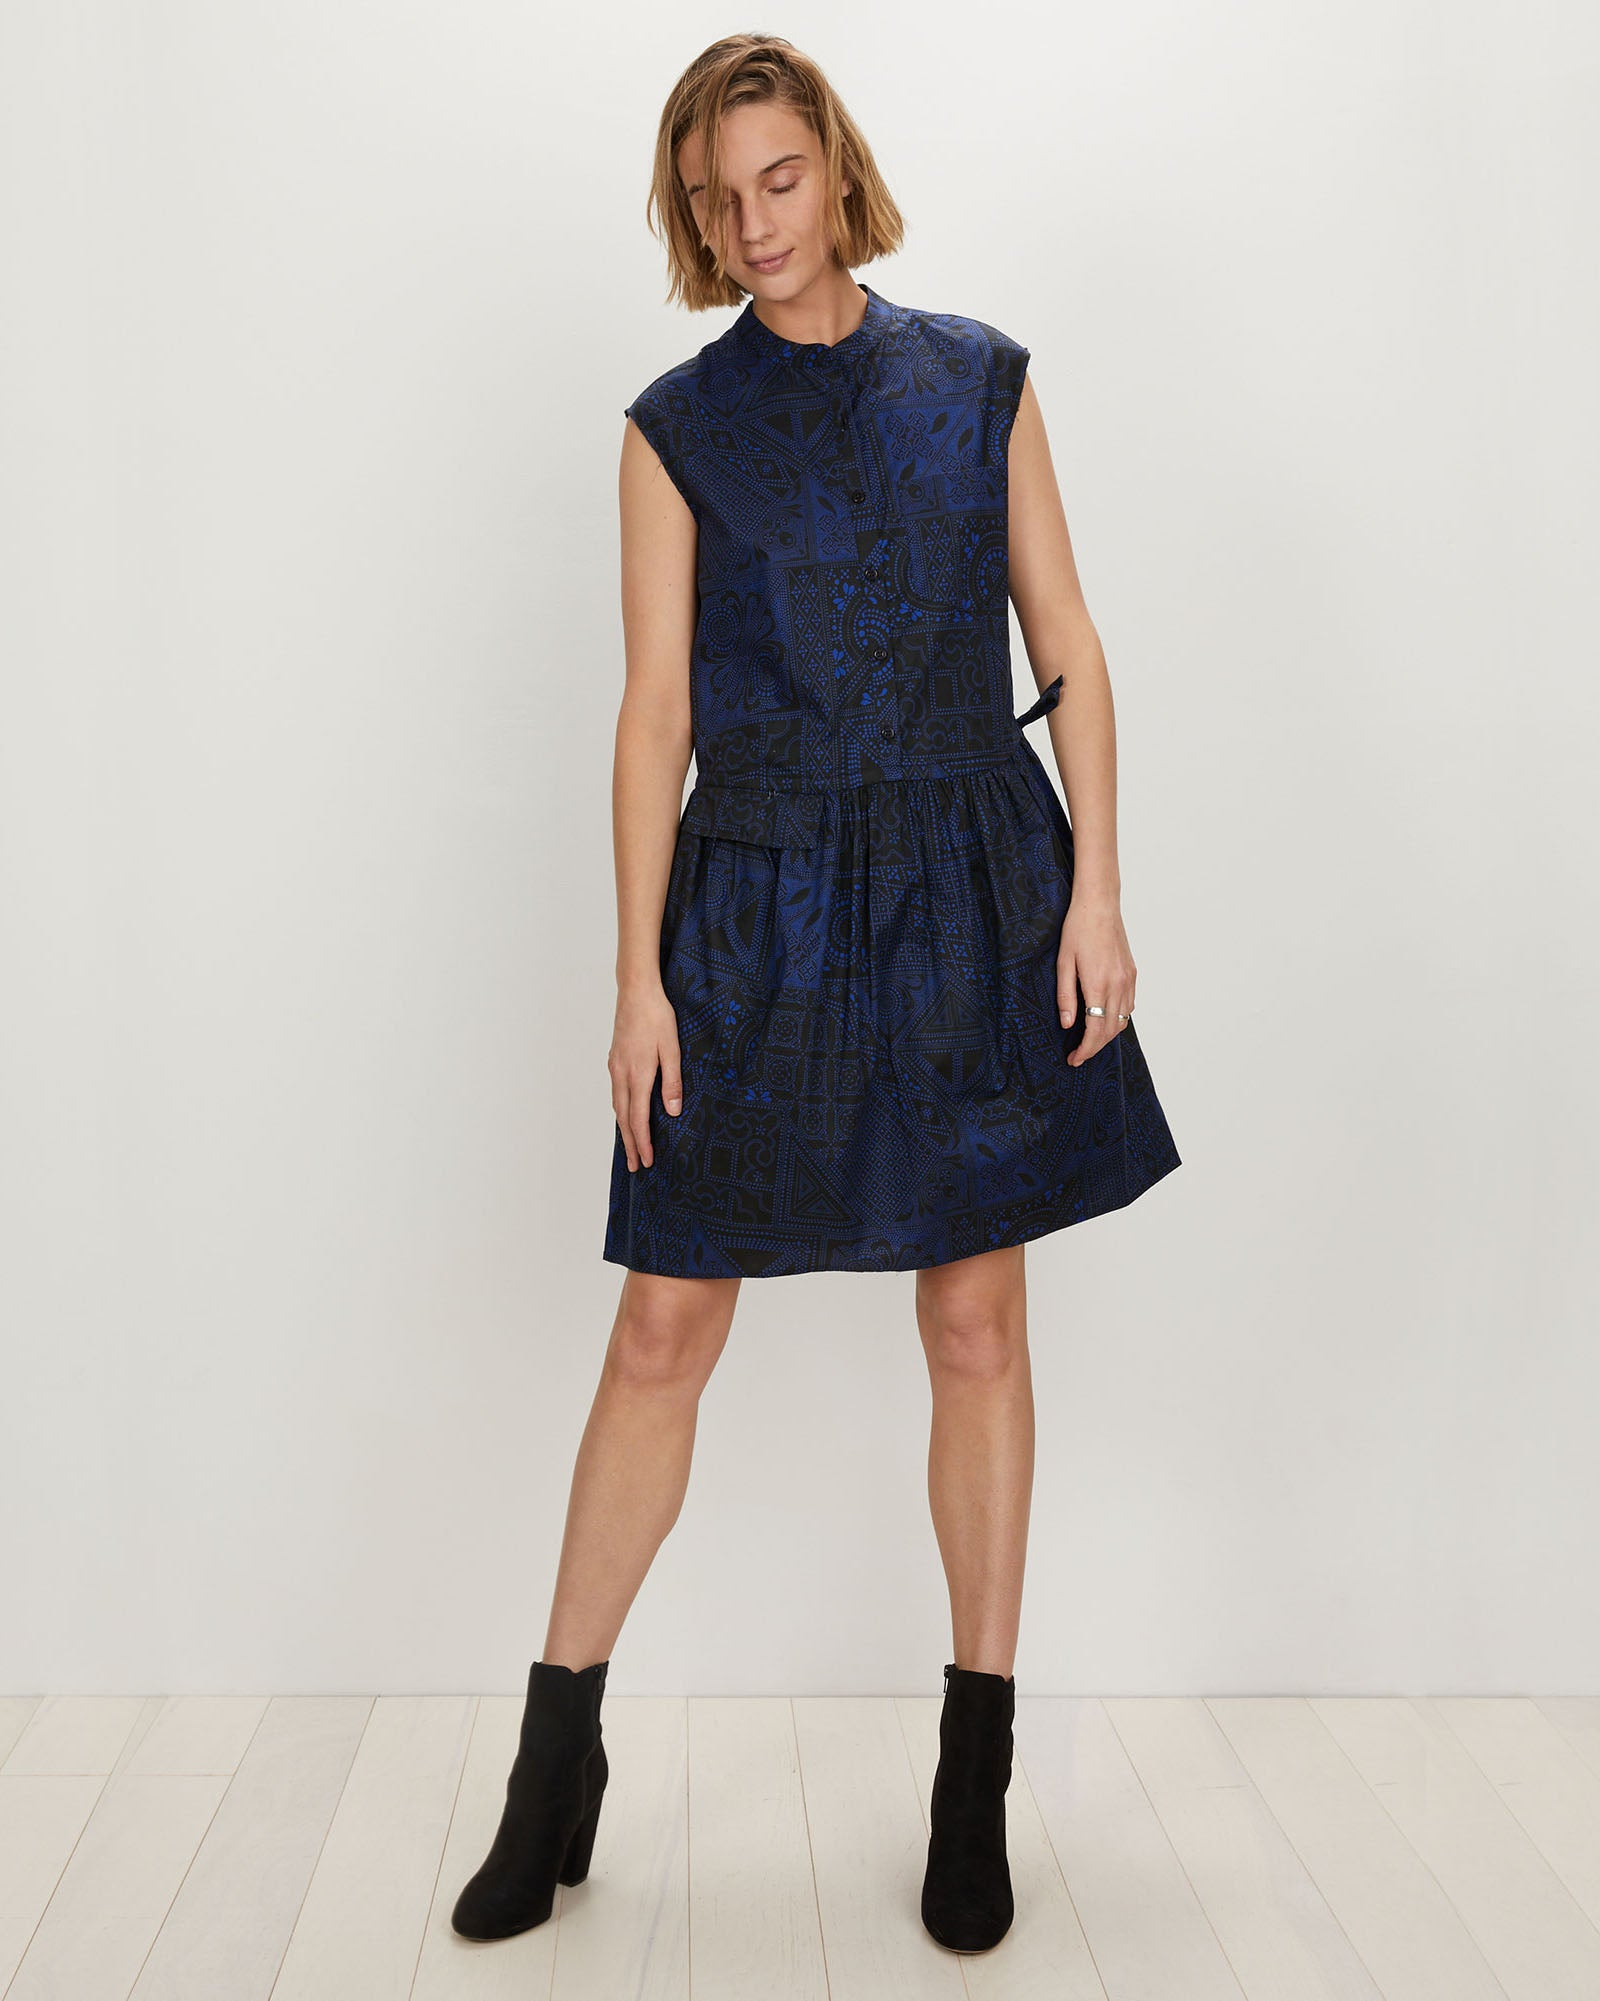 Deconstructed Shirtdress | Black Blue Batik